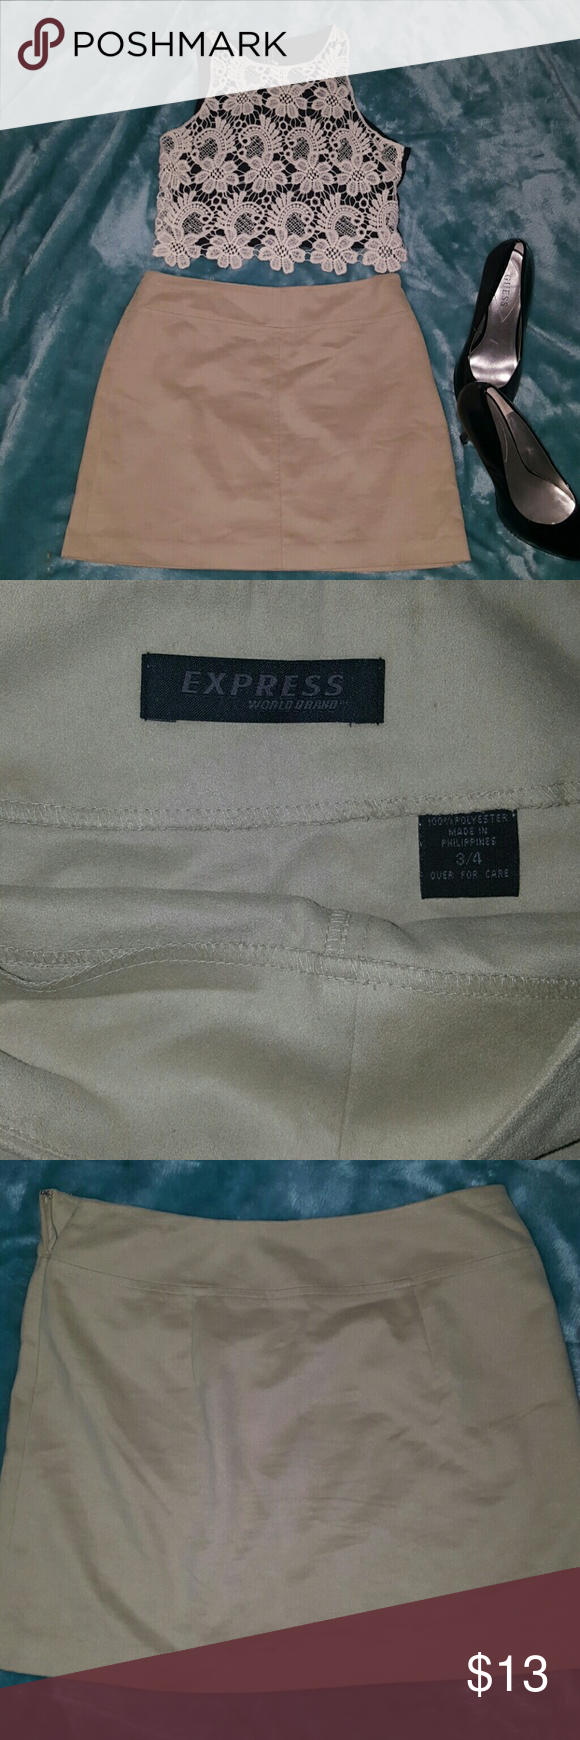 Express skirt 100% Polyester Express skirt.No stains or signs of being worn. Express Skirts Midi